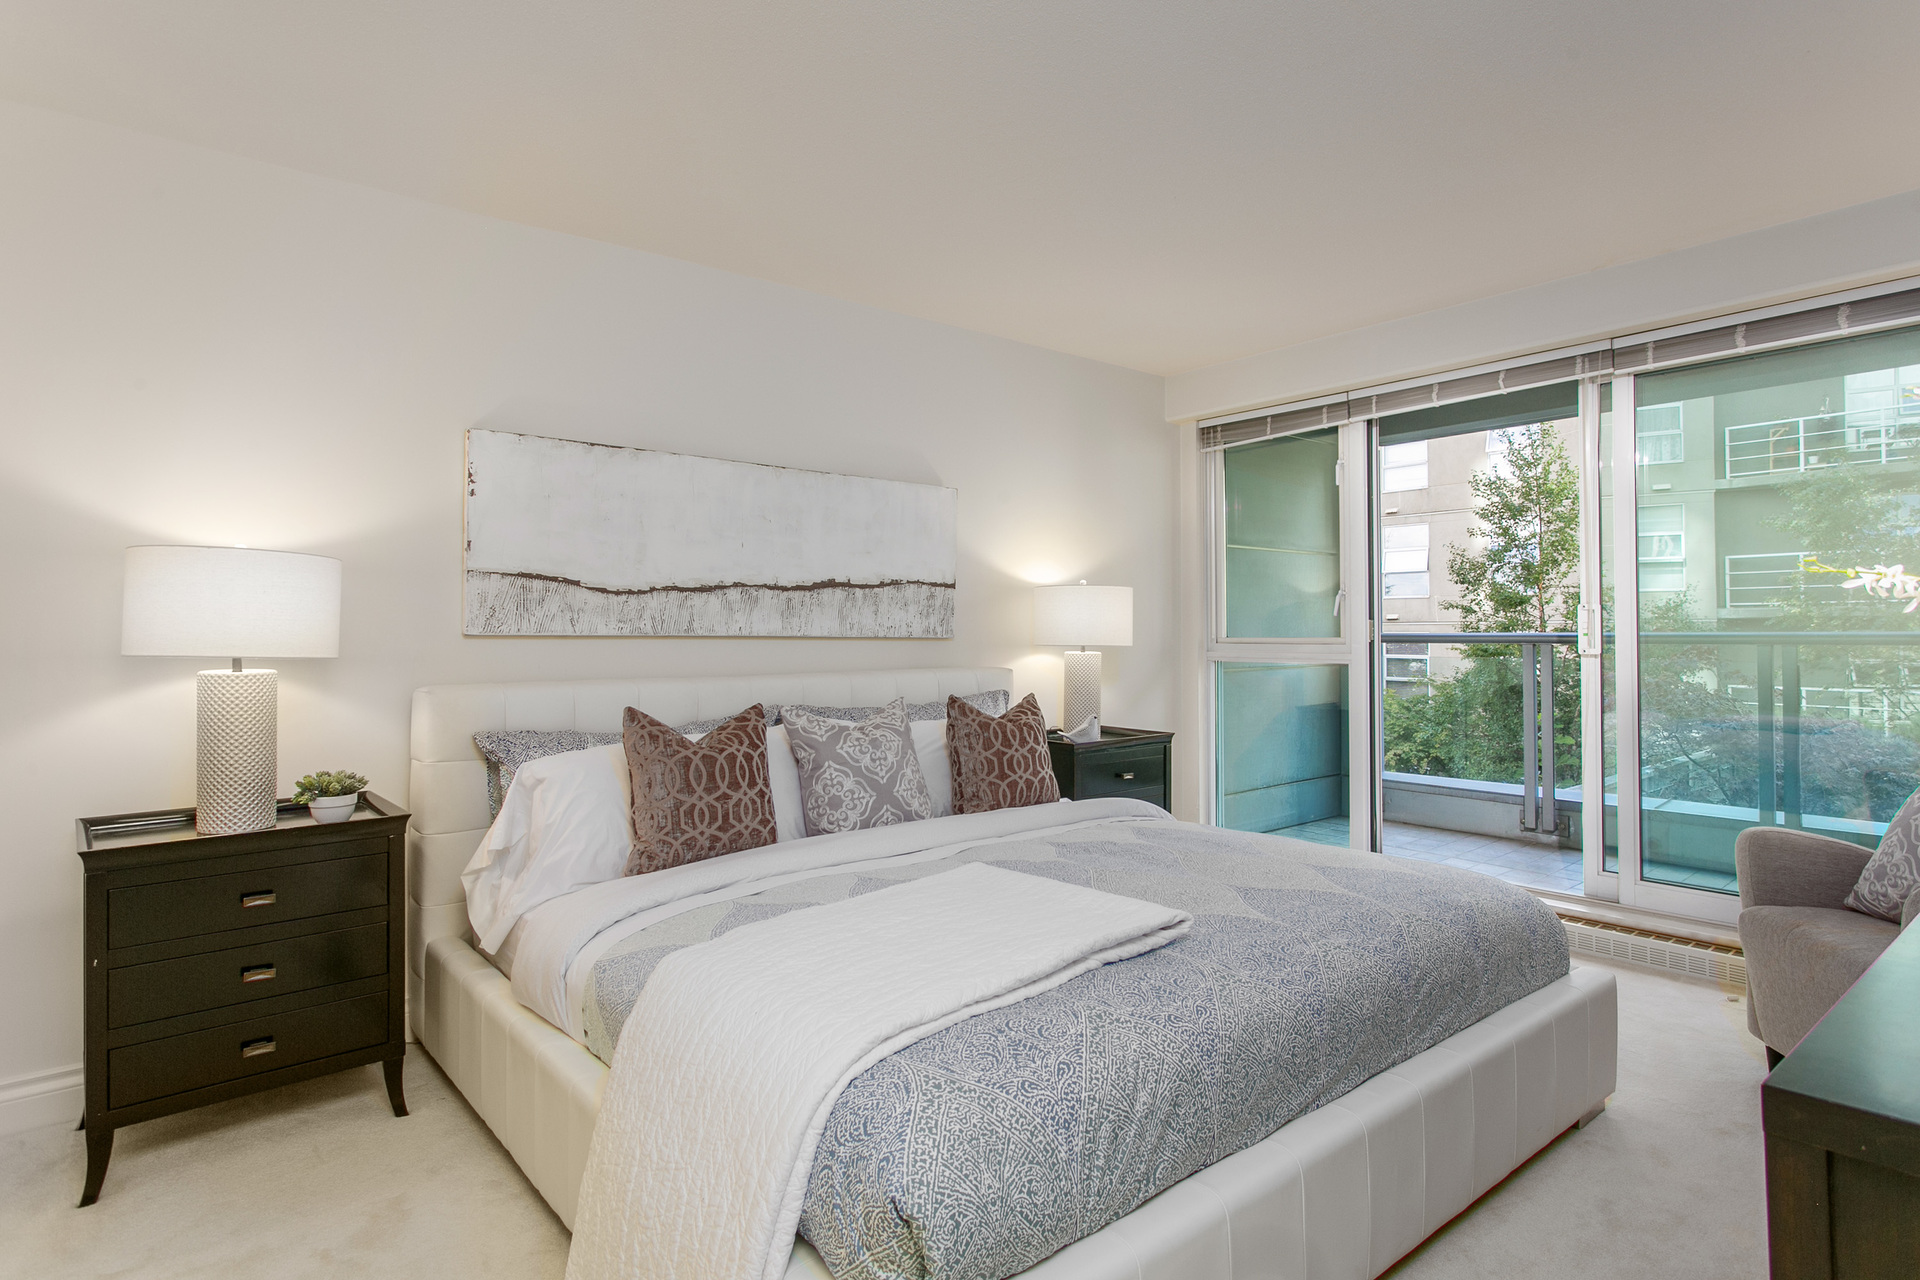 1j6a7499 at 401 - 535 Nicola, Coal Harbour, Vancouver West